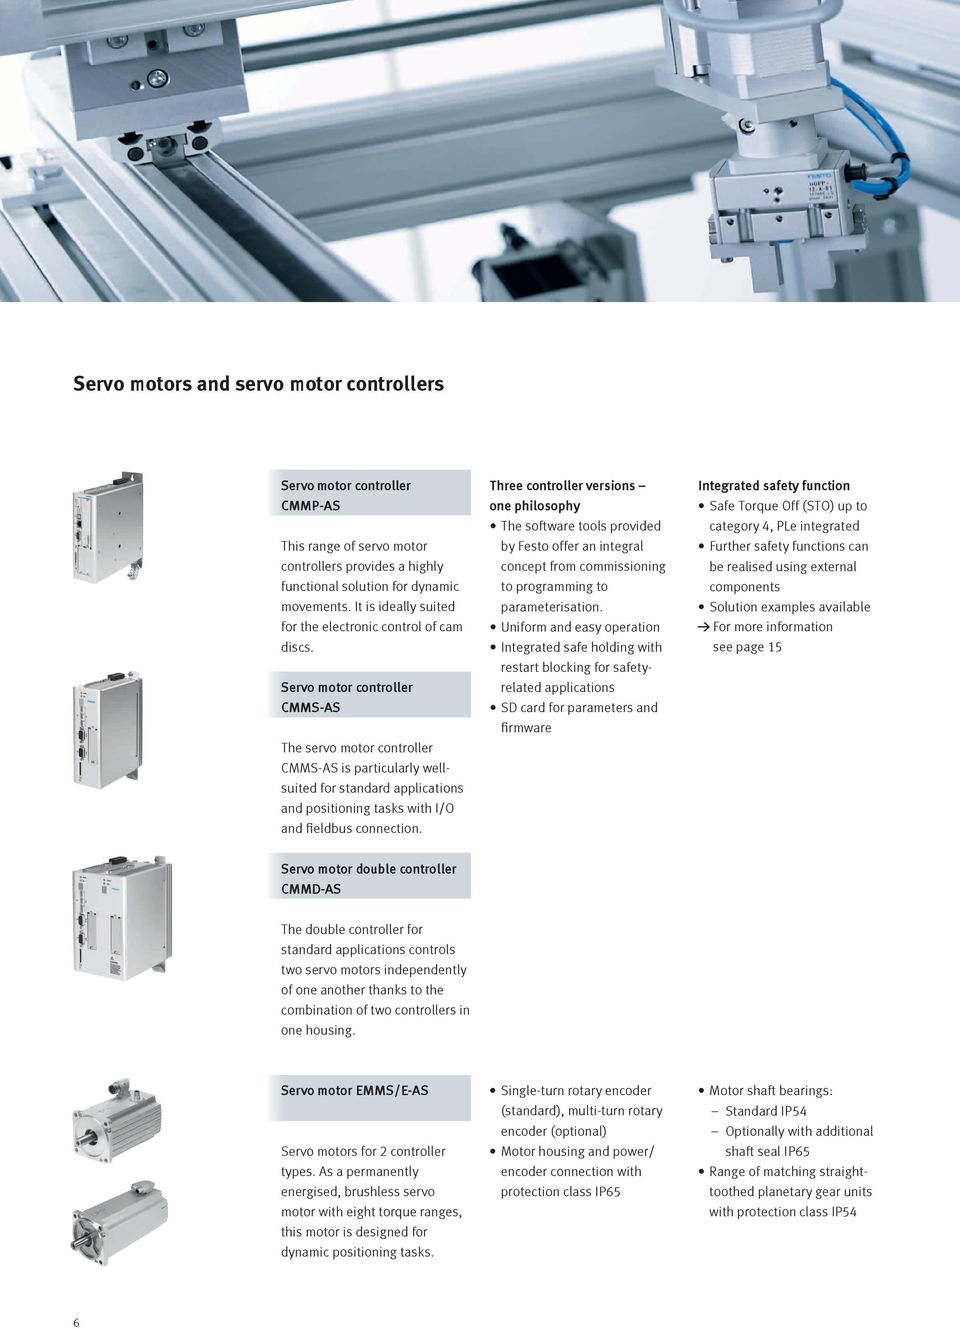 Servo motor controller CMMS-AS The servo motor controller CMMS-AS is particularly wellsuited for standard applications and positioning tasks with I/O and fieldbus connection.